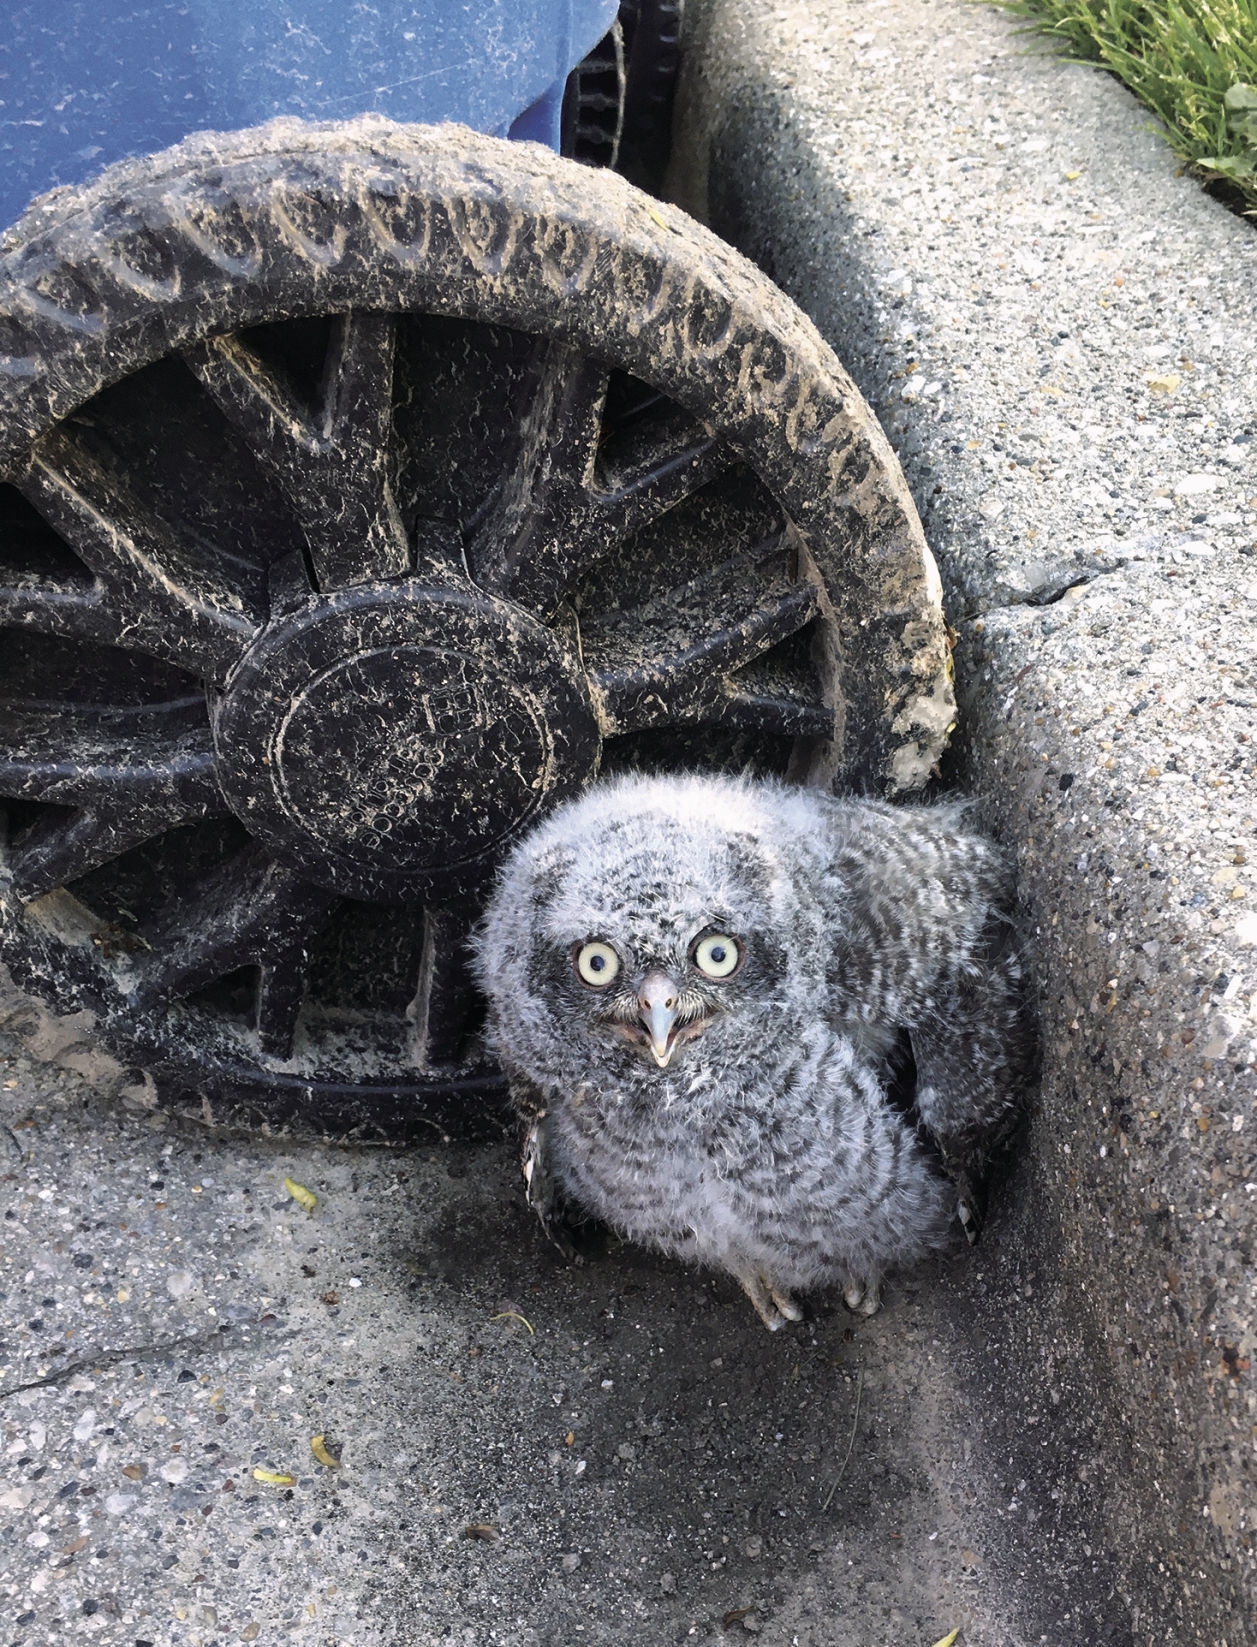 Owlet returned to its home